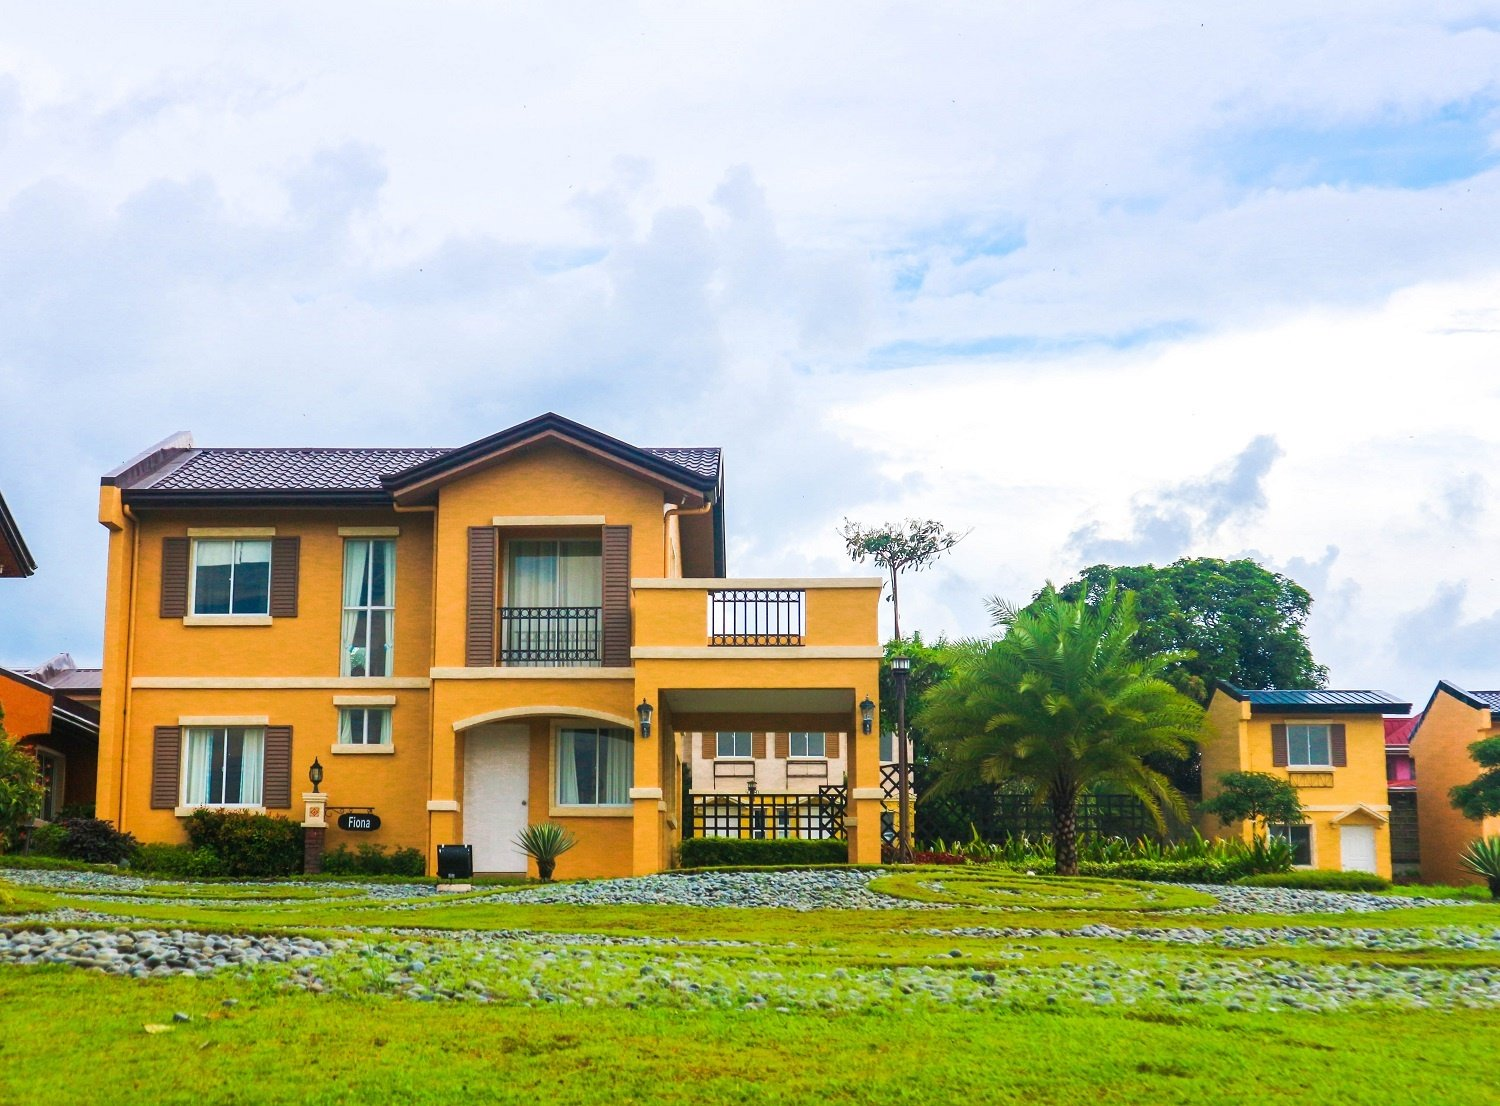 Camella Taal house and lot unit with carport and balcony